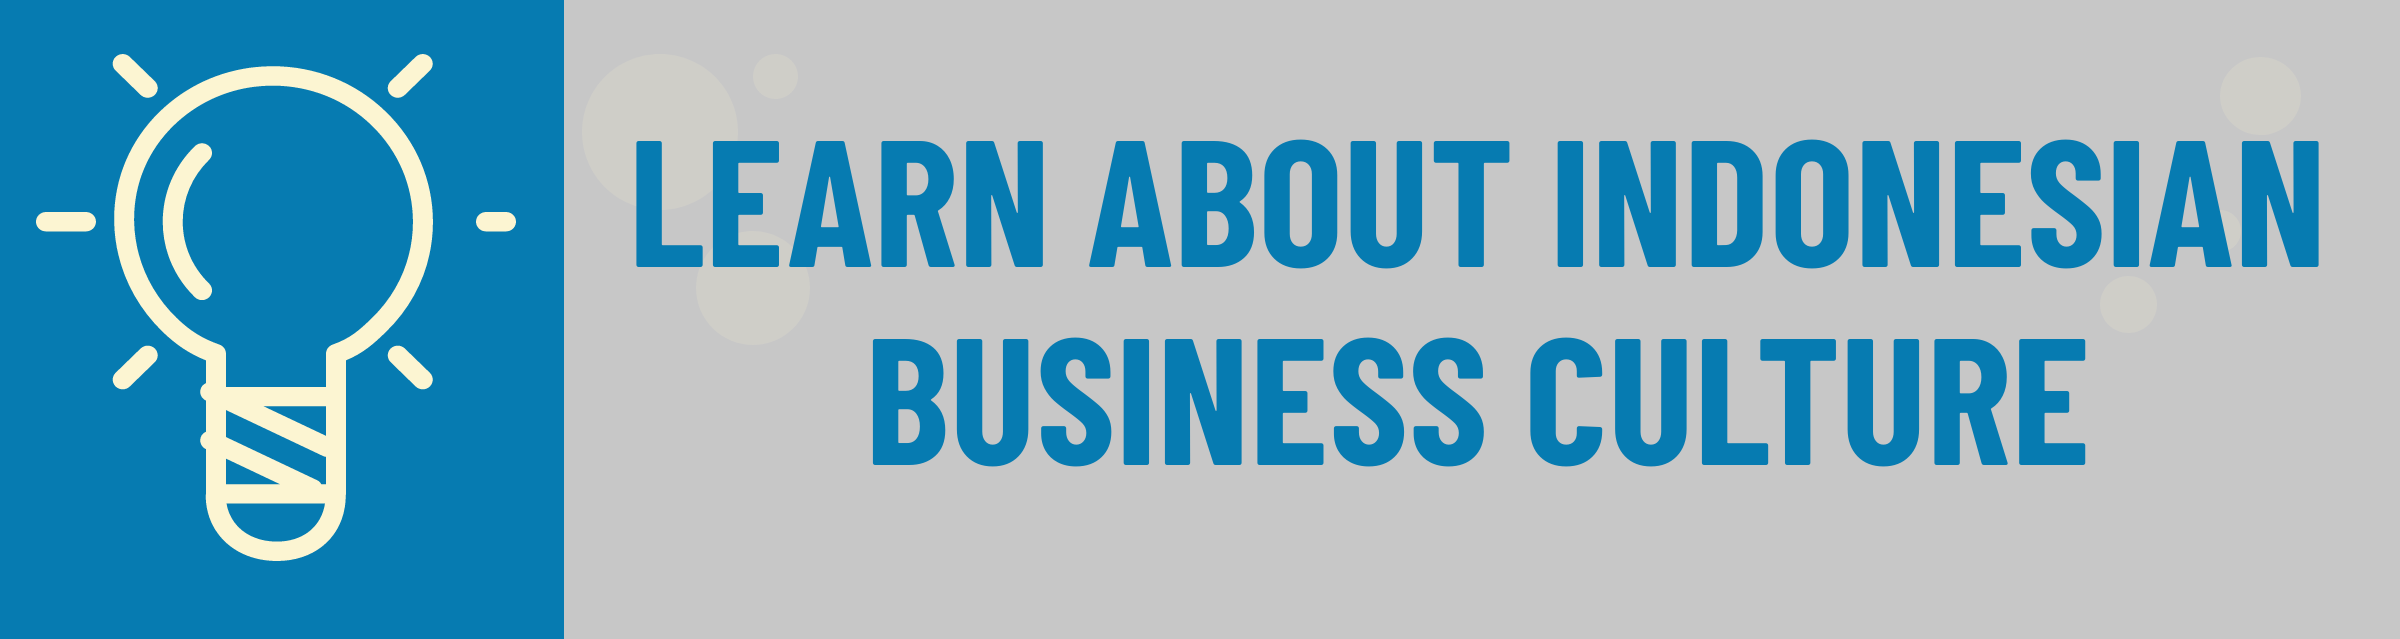 Banner: Learn About Indonesian Business Culture